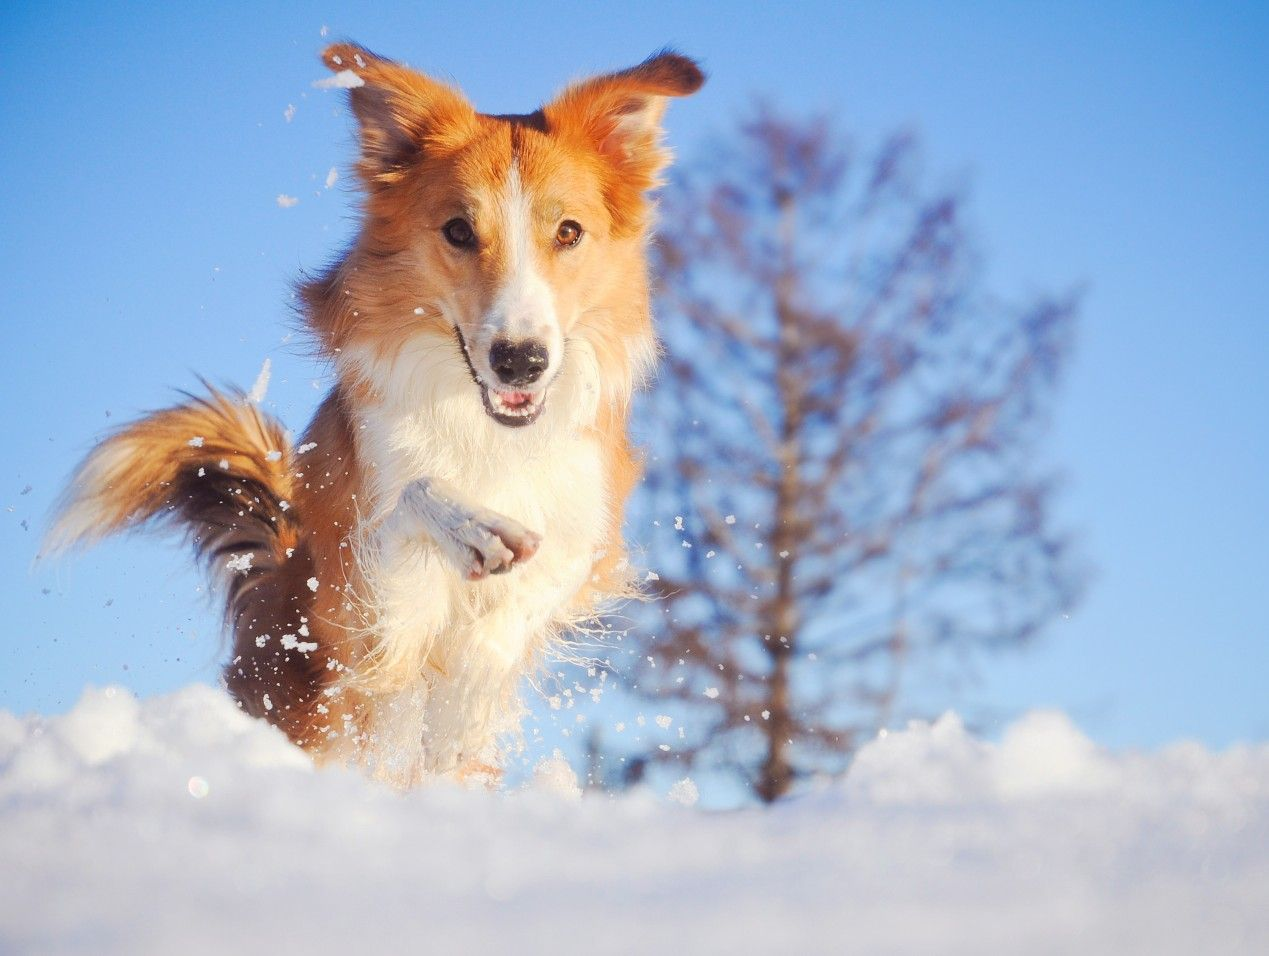 Why Dogs Love The Cold And Playing In The Snow Https Flip It Nmoj8 With Images Pet Care Dogs Cheap Pet Insurance Dog Insurance